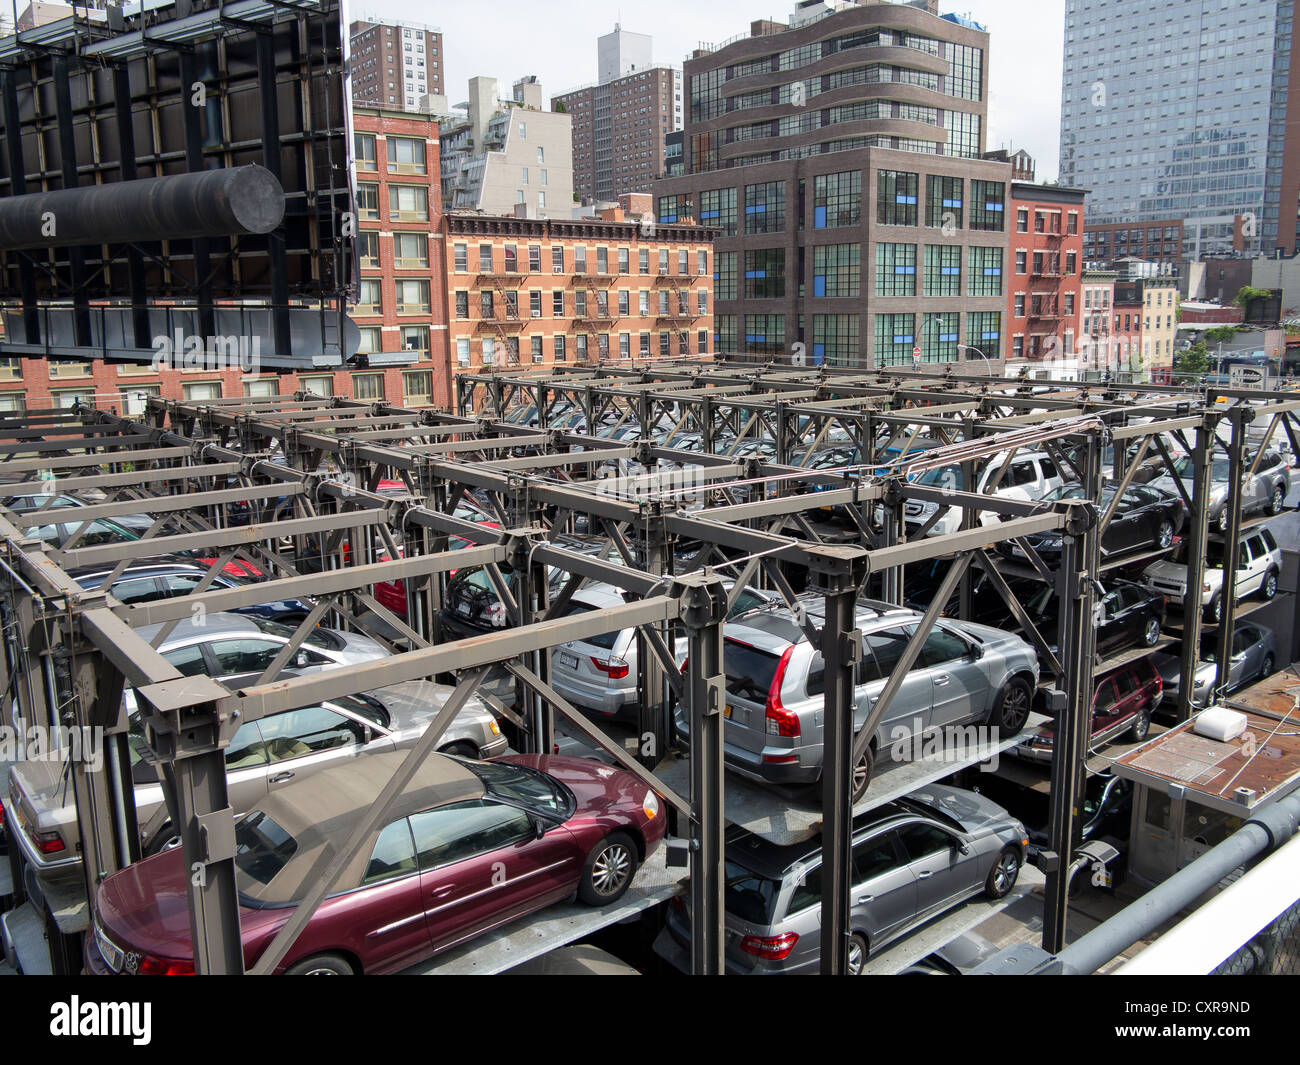 Parking Lots >> Car park, stacked parking garage, Manhattan, New York City, USA Stock Photo: 50914345 - Alamy